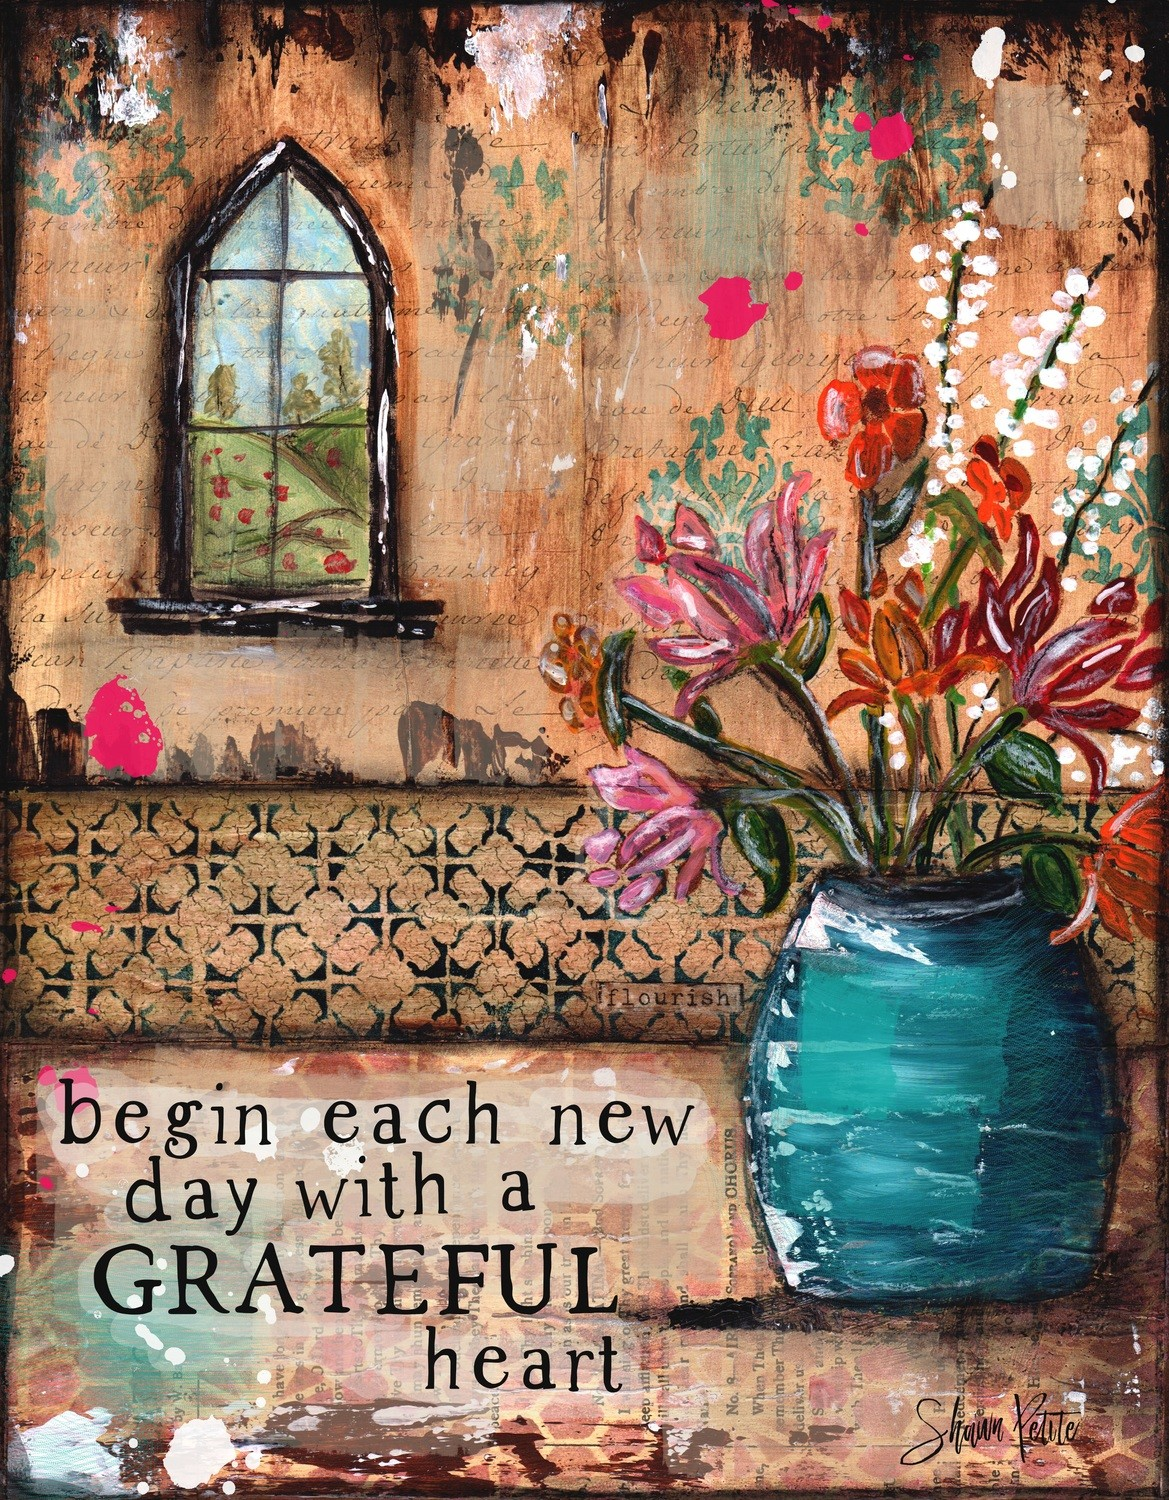 """Begin each day with a Grateful Heart"""